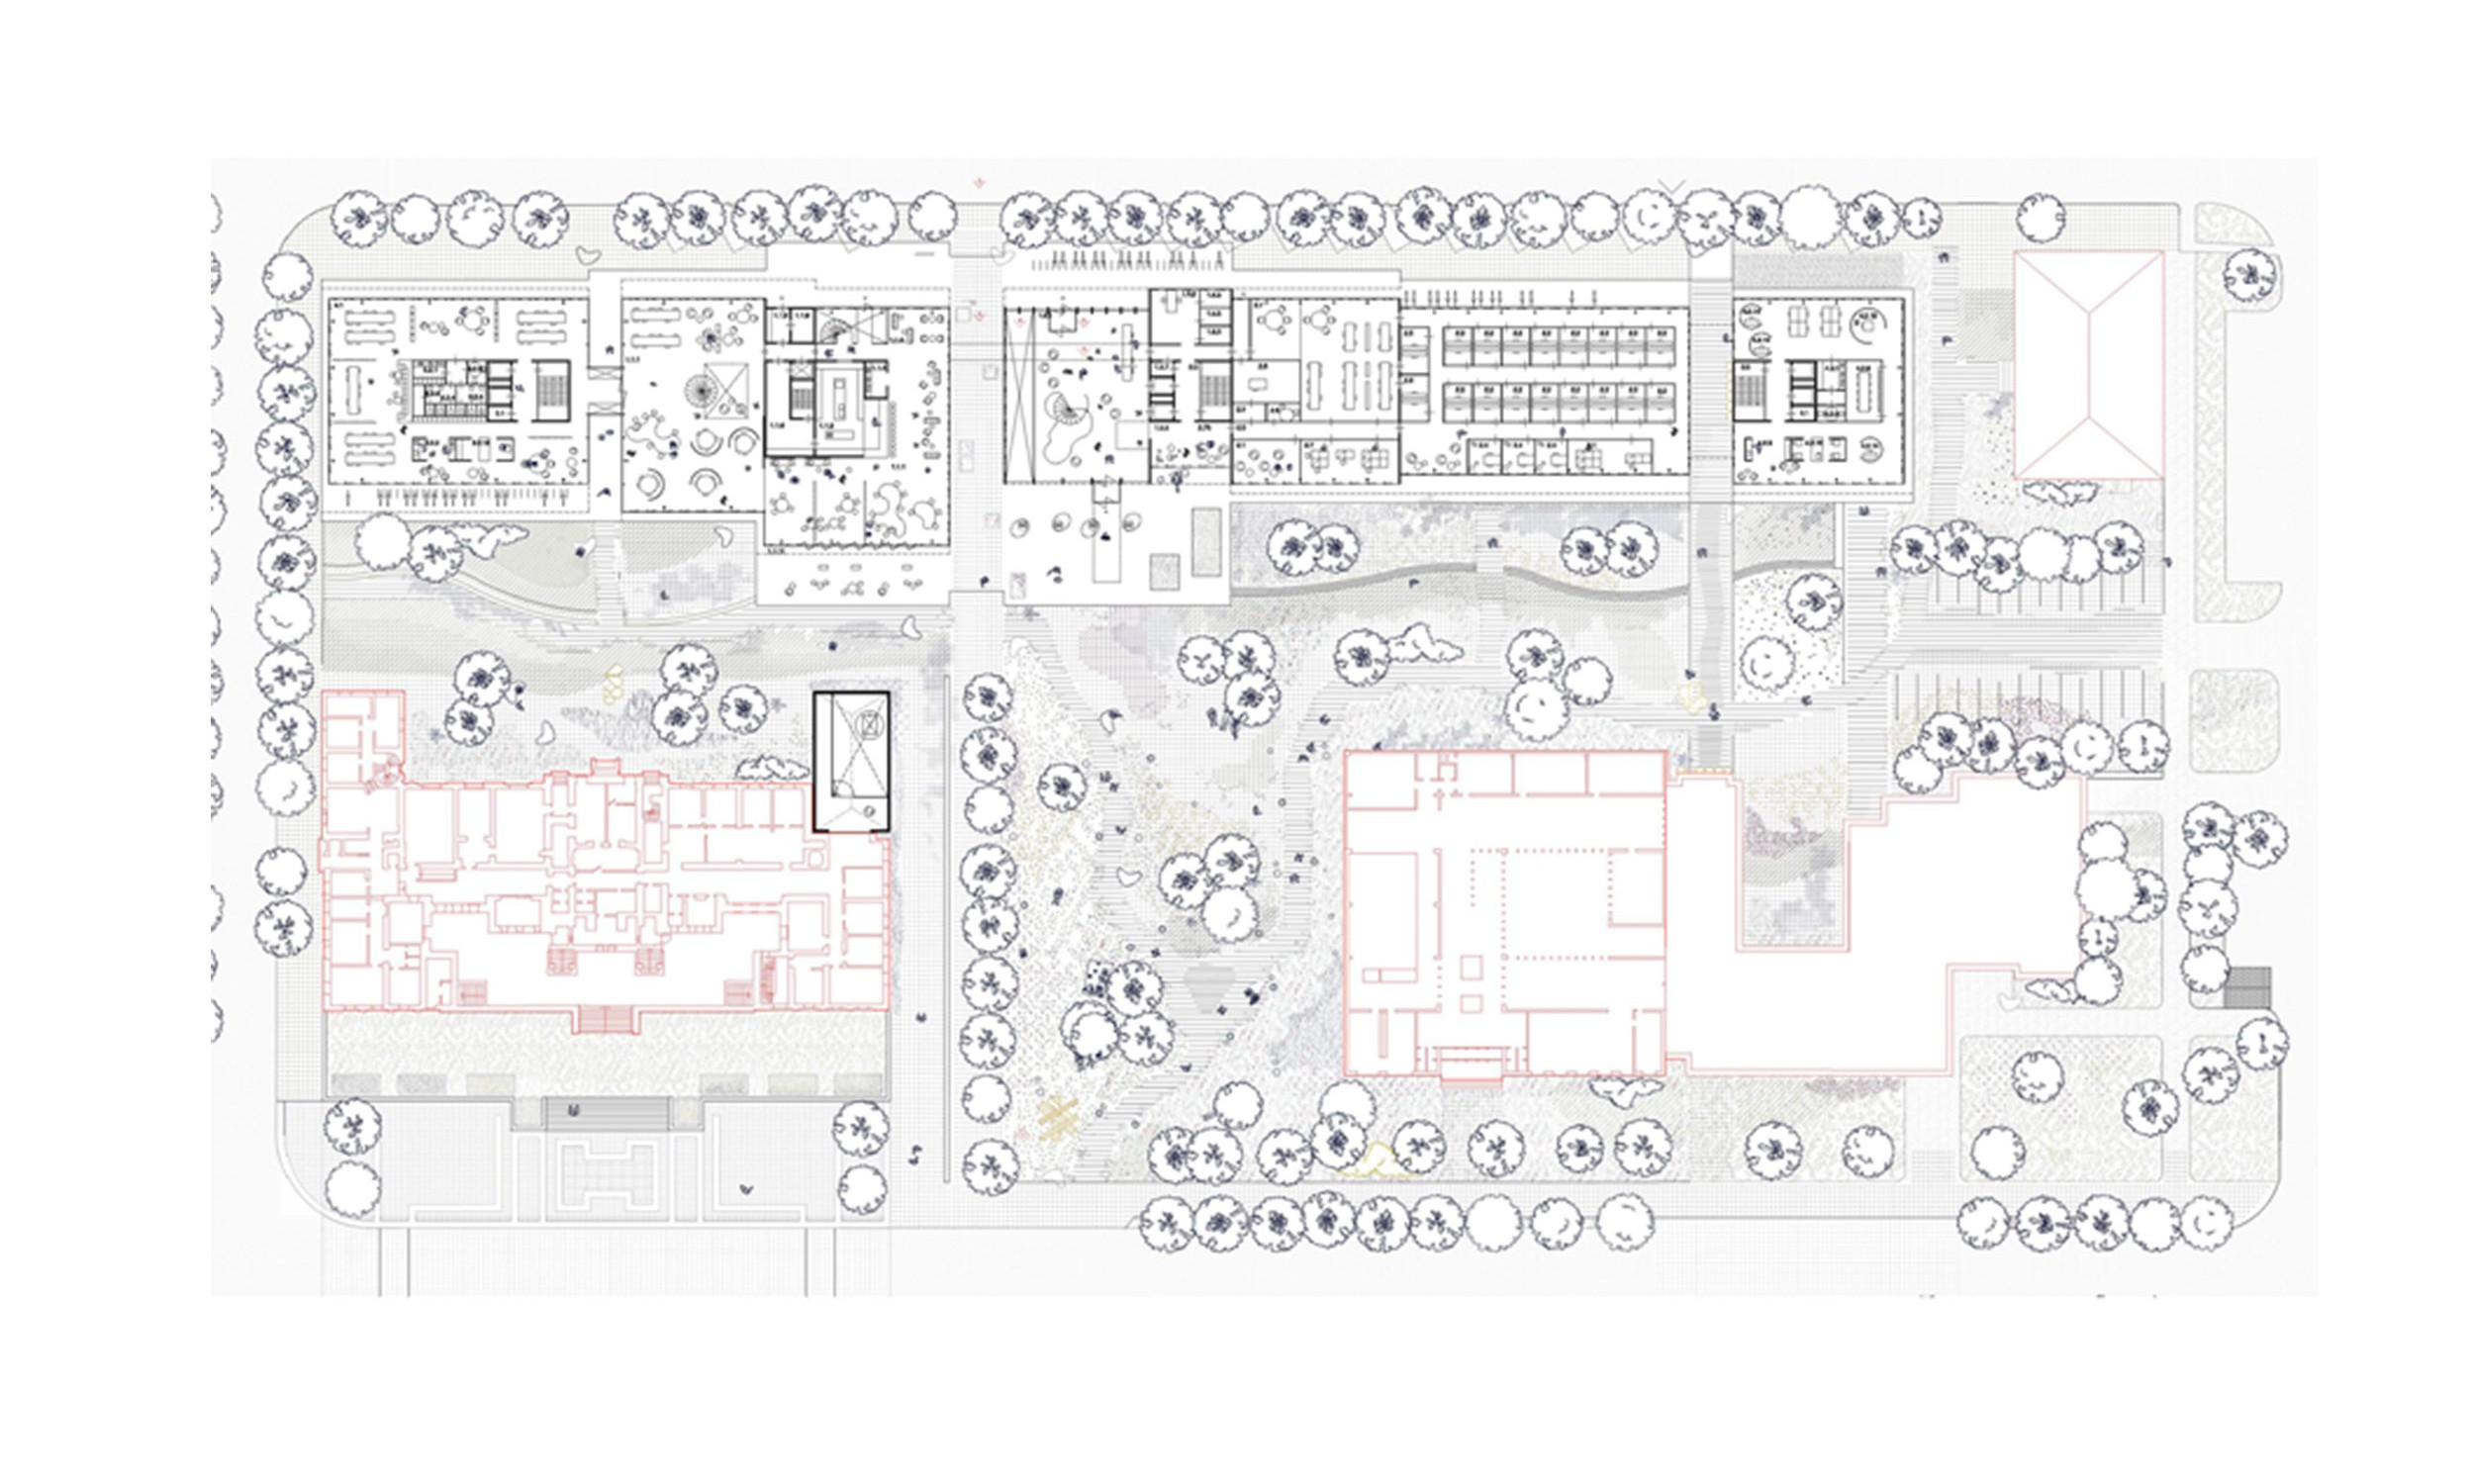 main_office_04_ostersund_site_plan